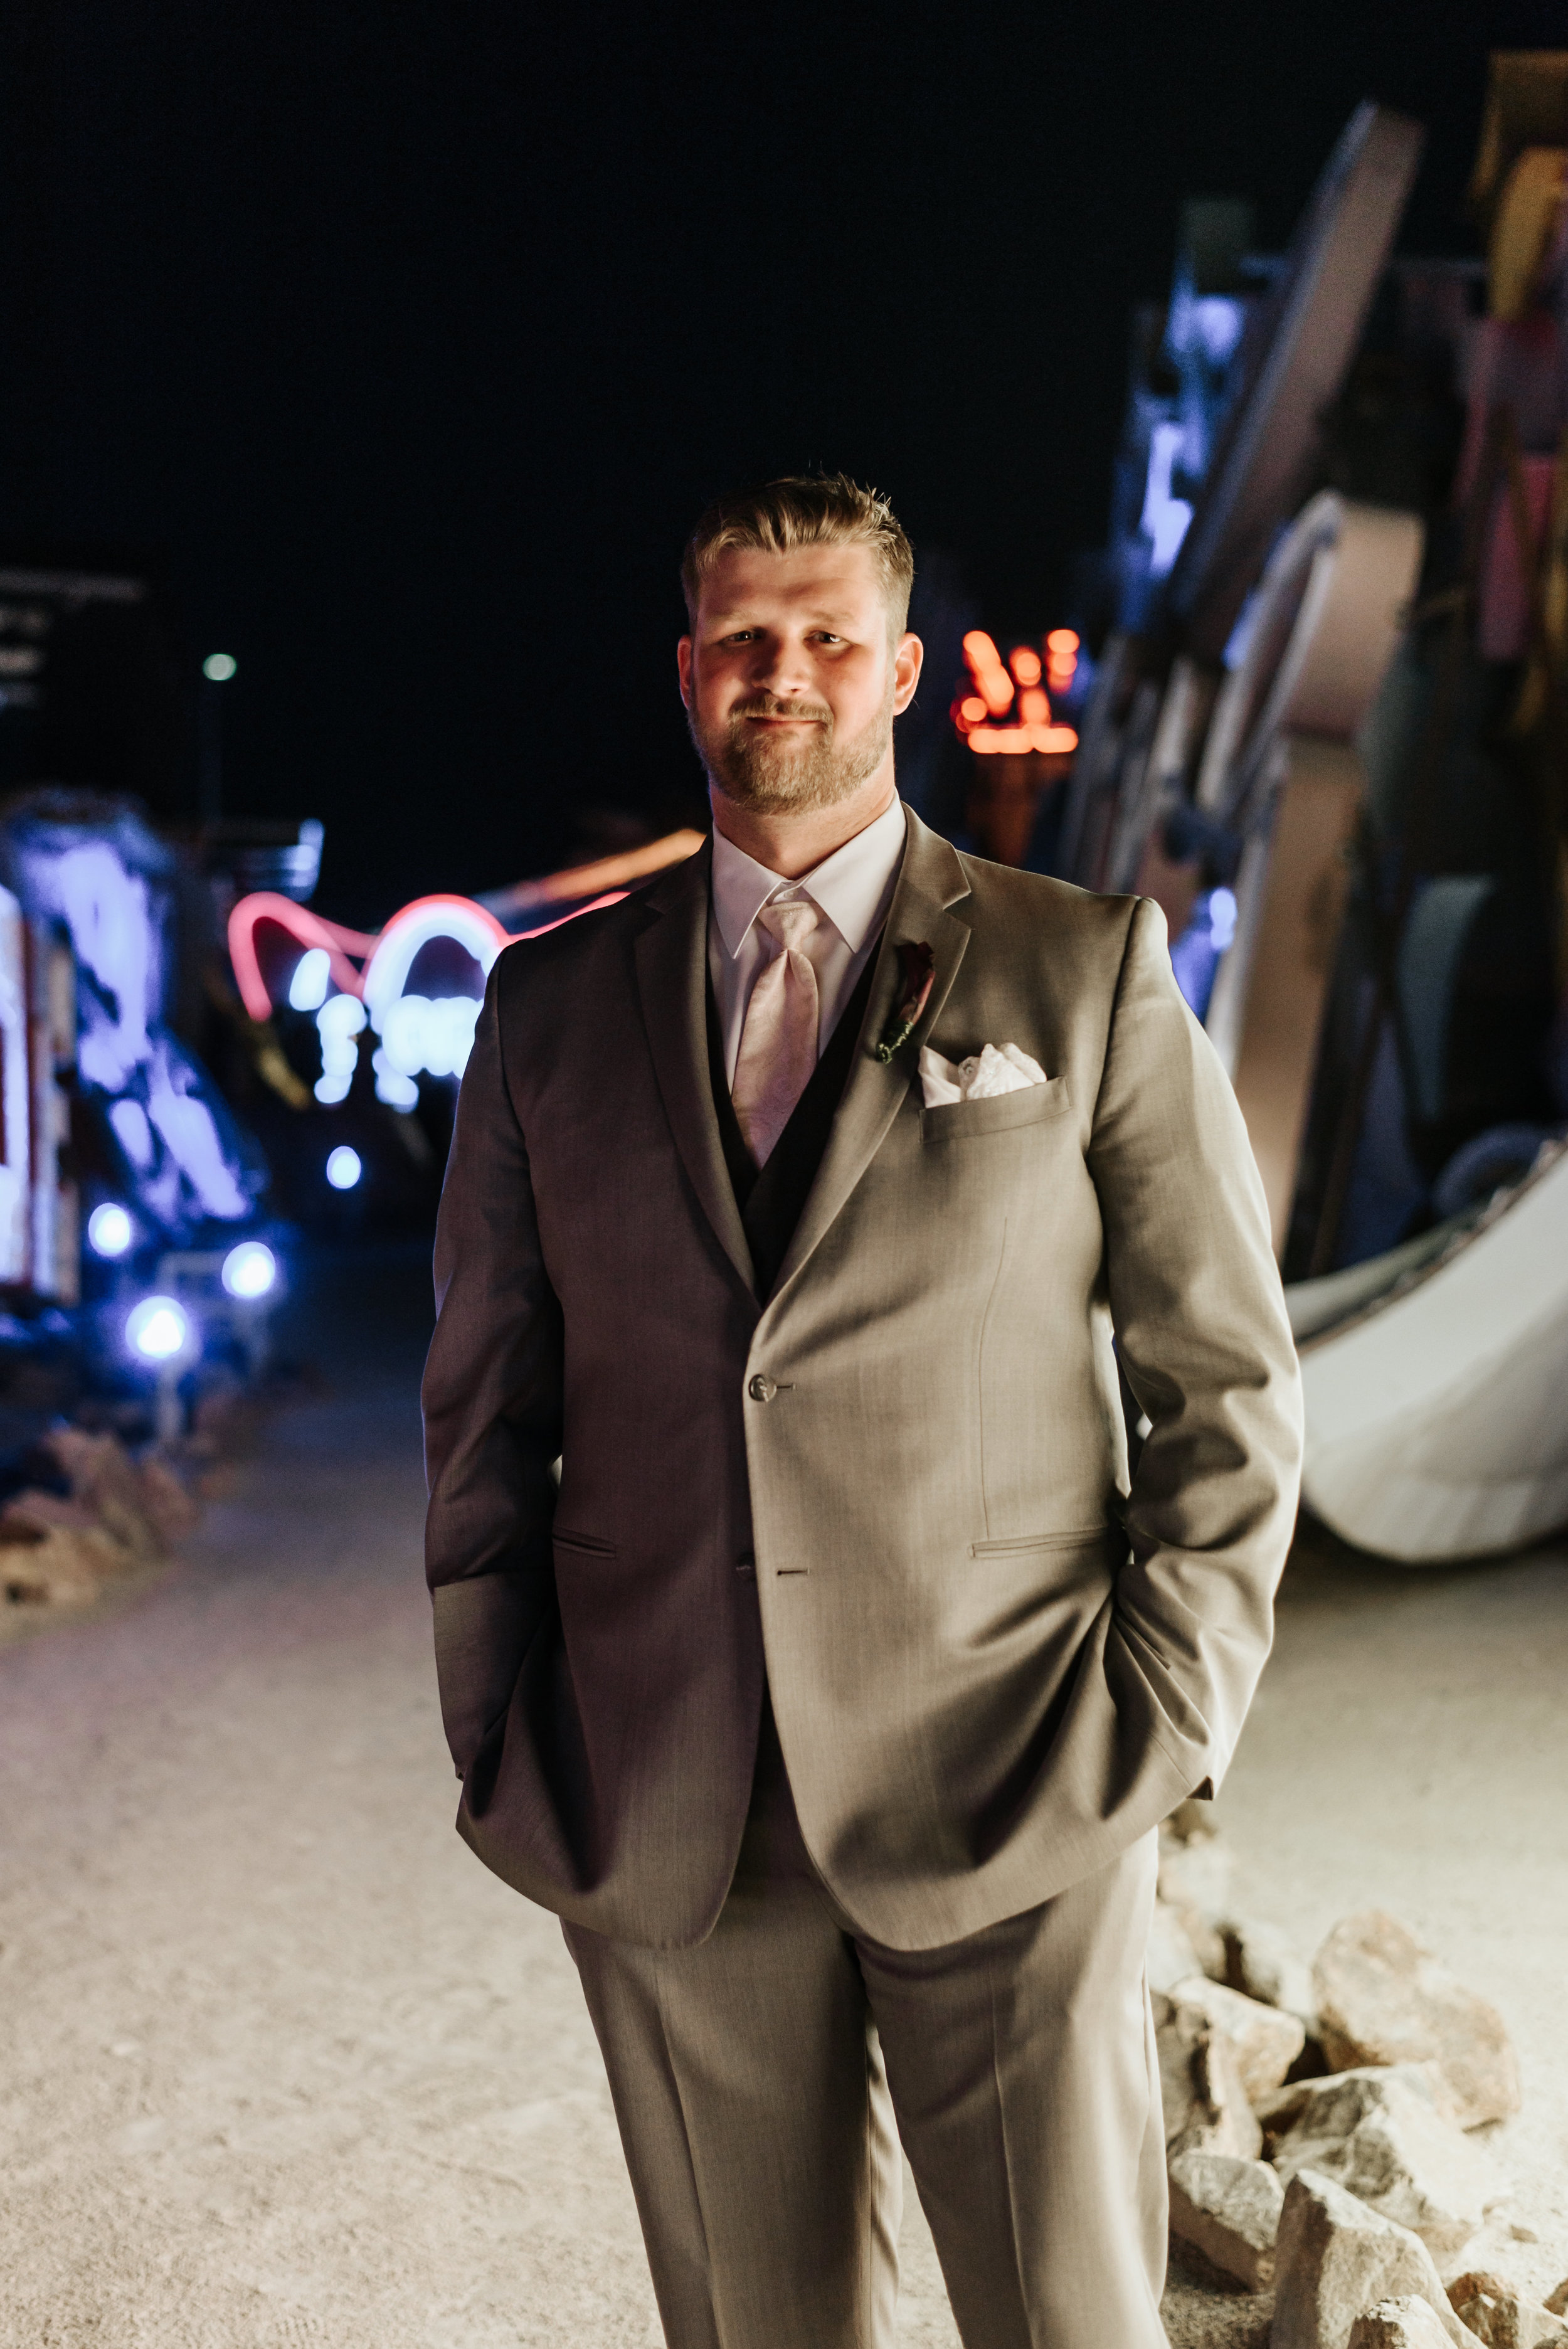 Neon-Museum-Wedding-Las-Vegas-Nevada-Golden-Nugget-Photography-by-V-Ally-and-Dan-7008.jpg